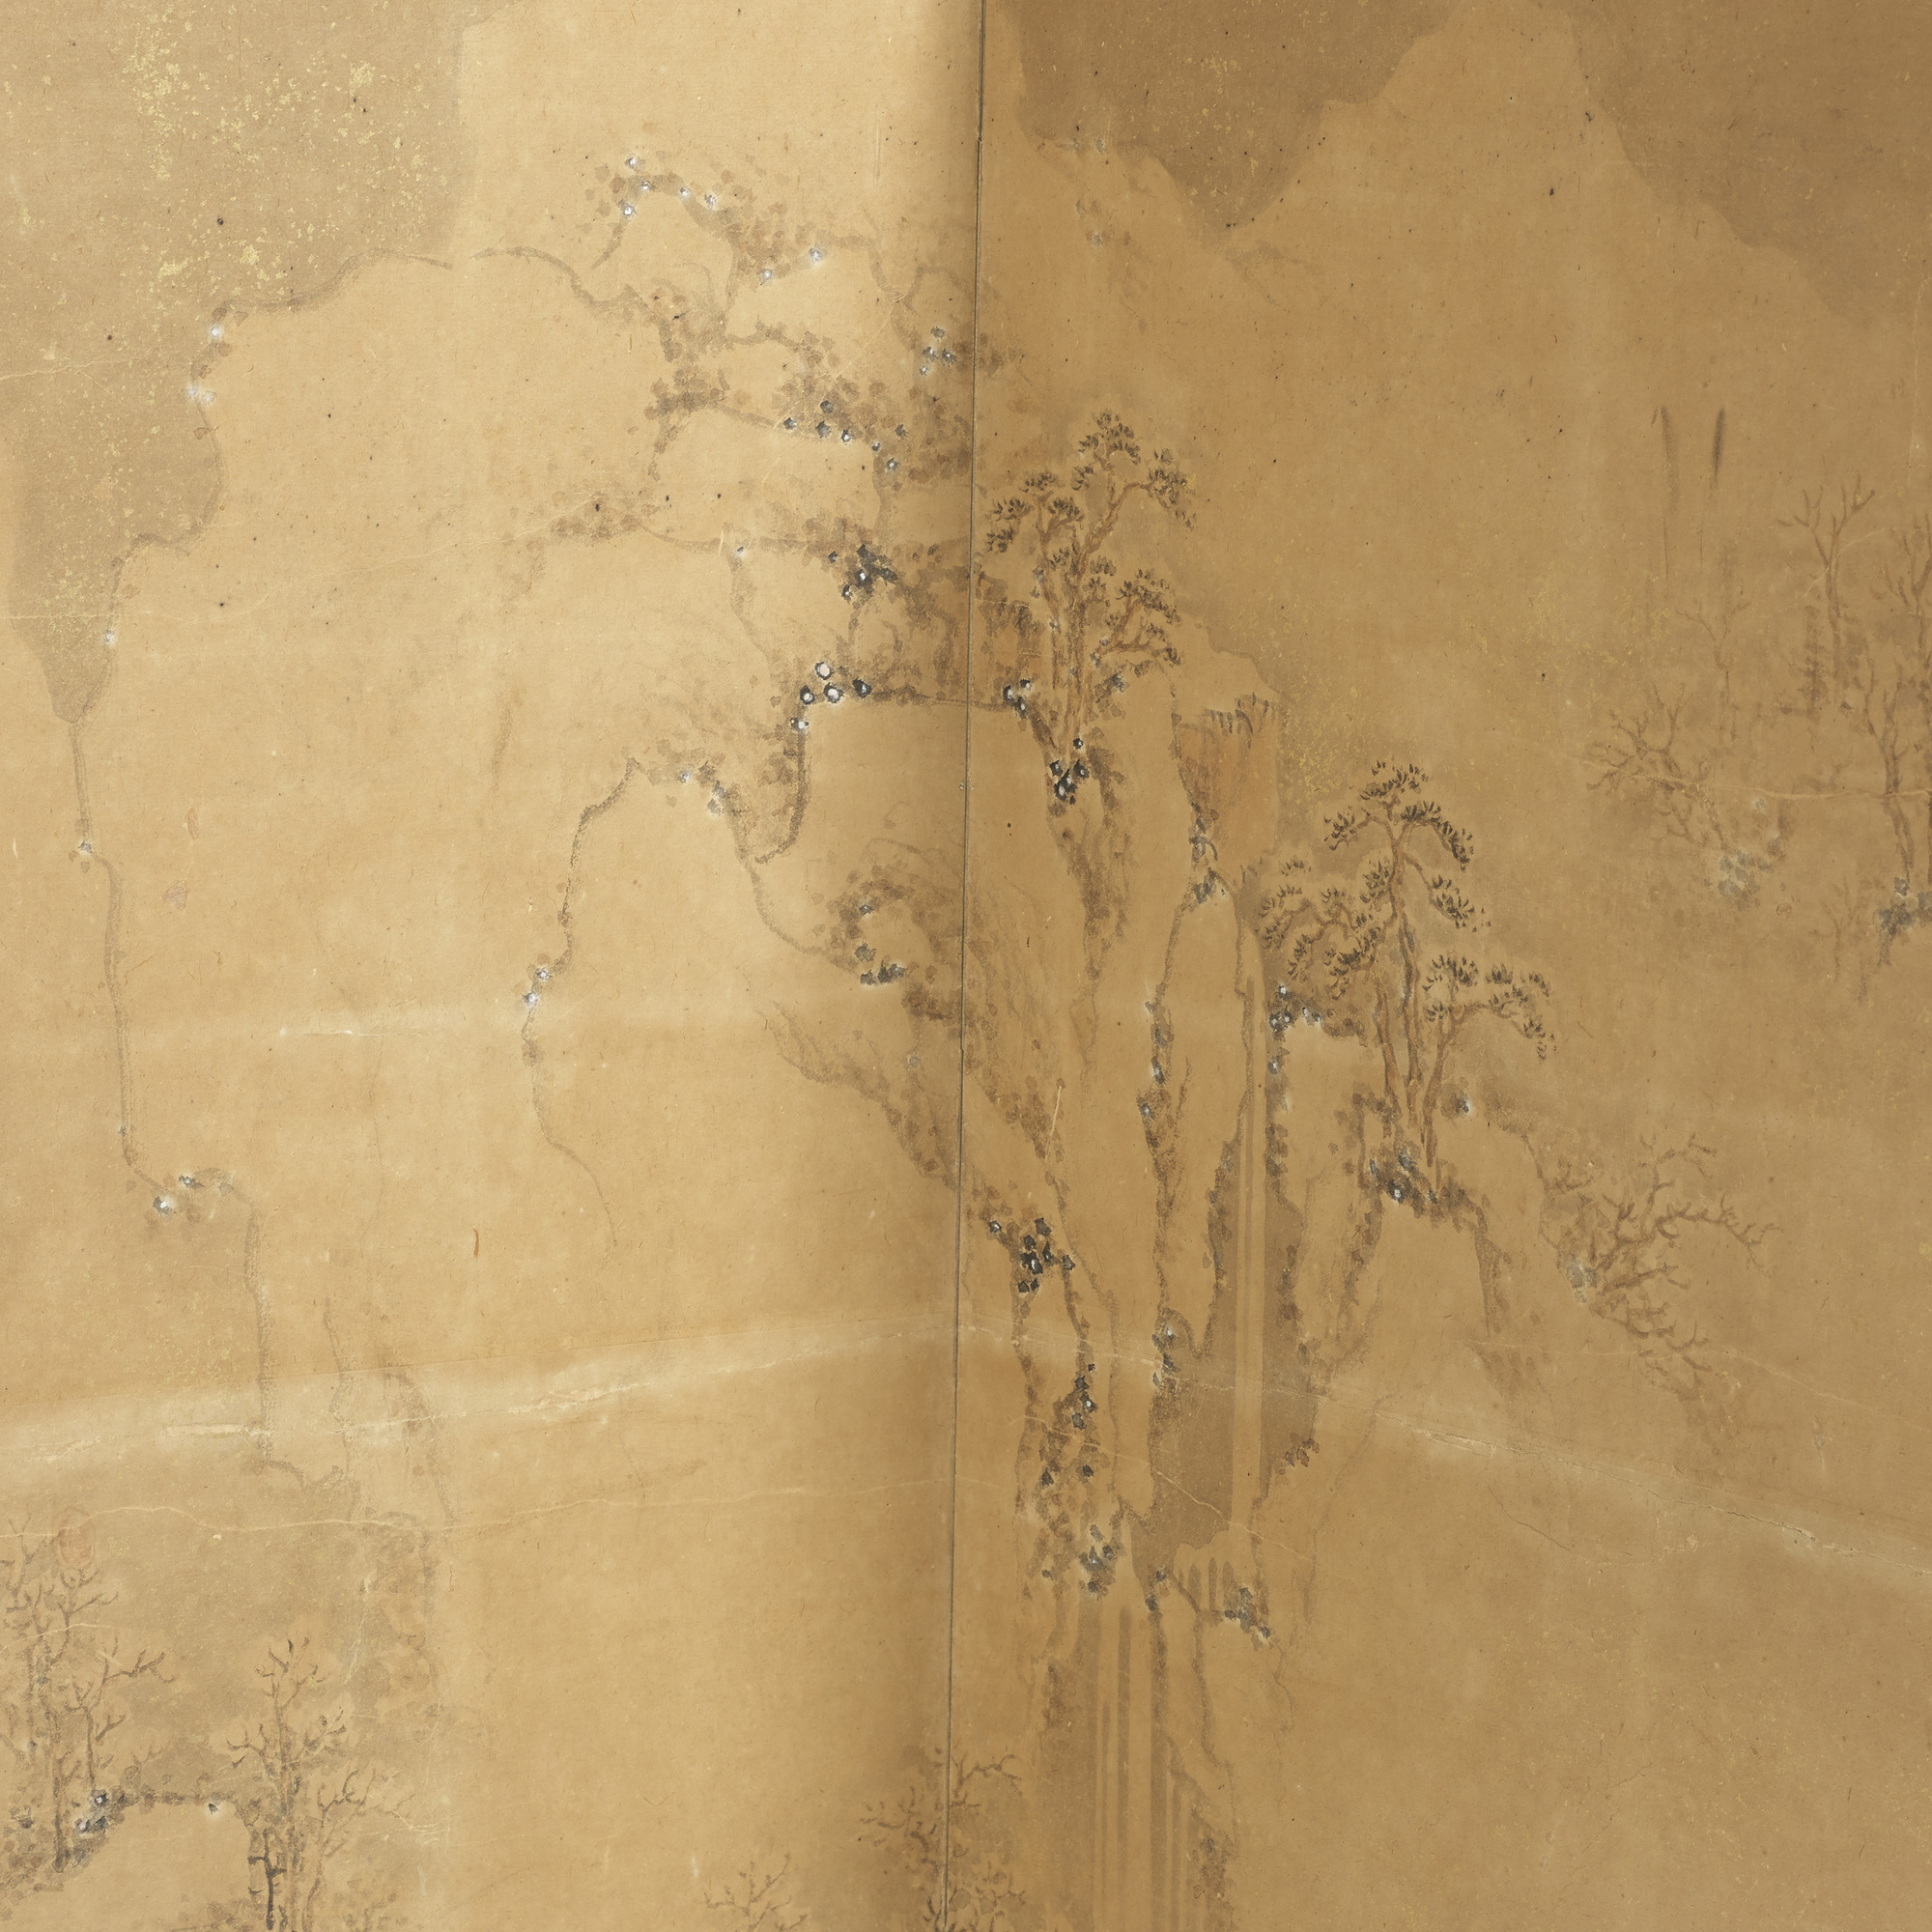 241: Japanese / folding screen (3 of 3)